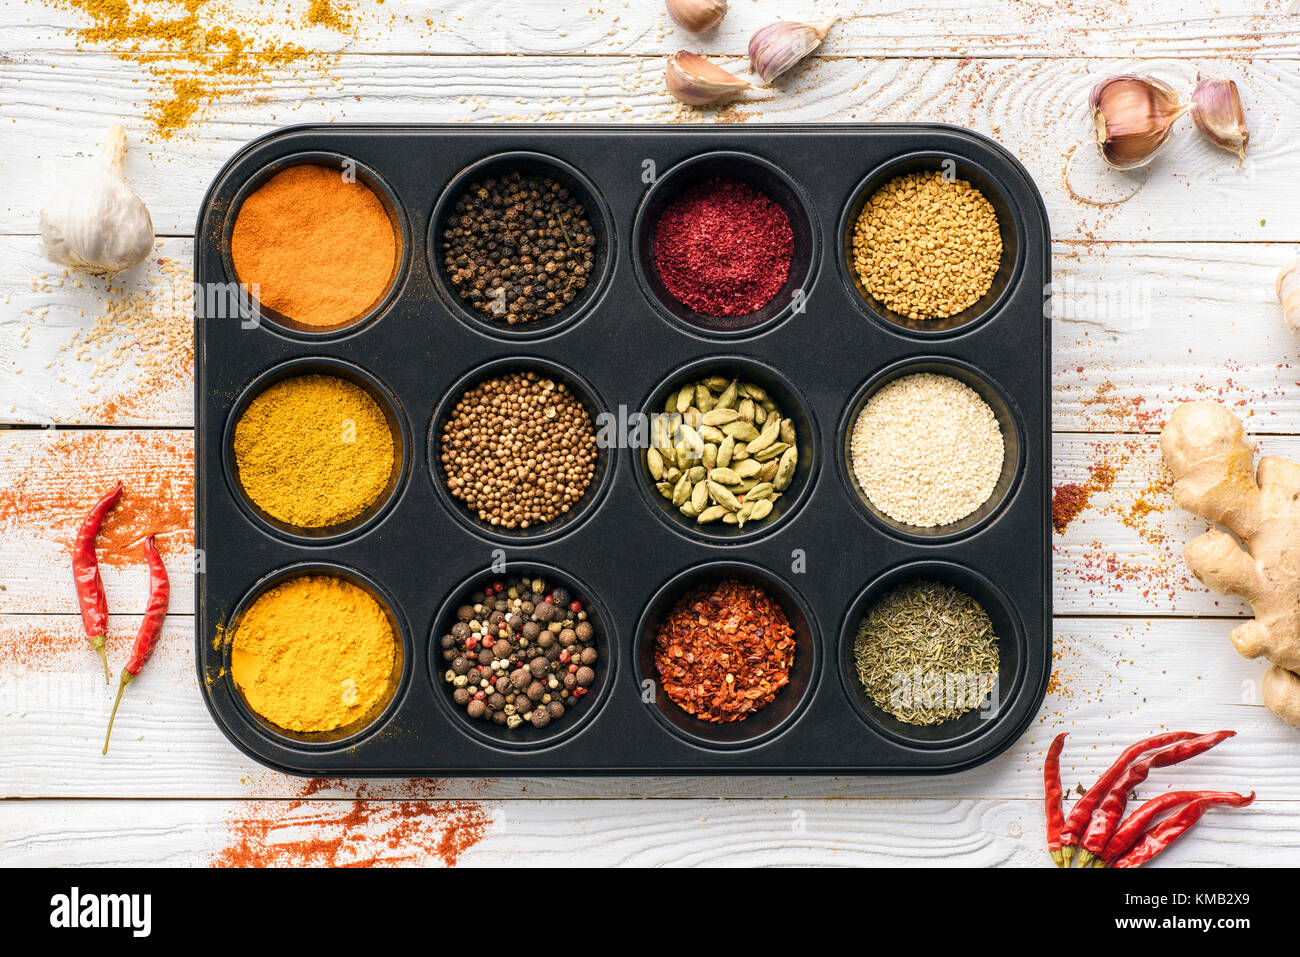 black tray with spices - Stock Image